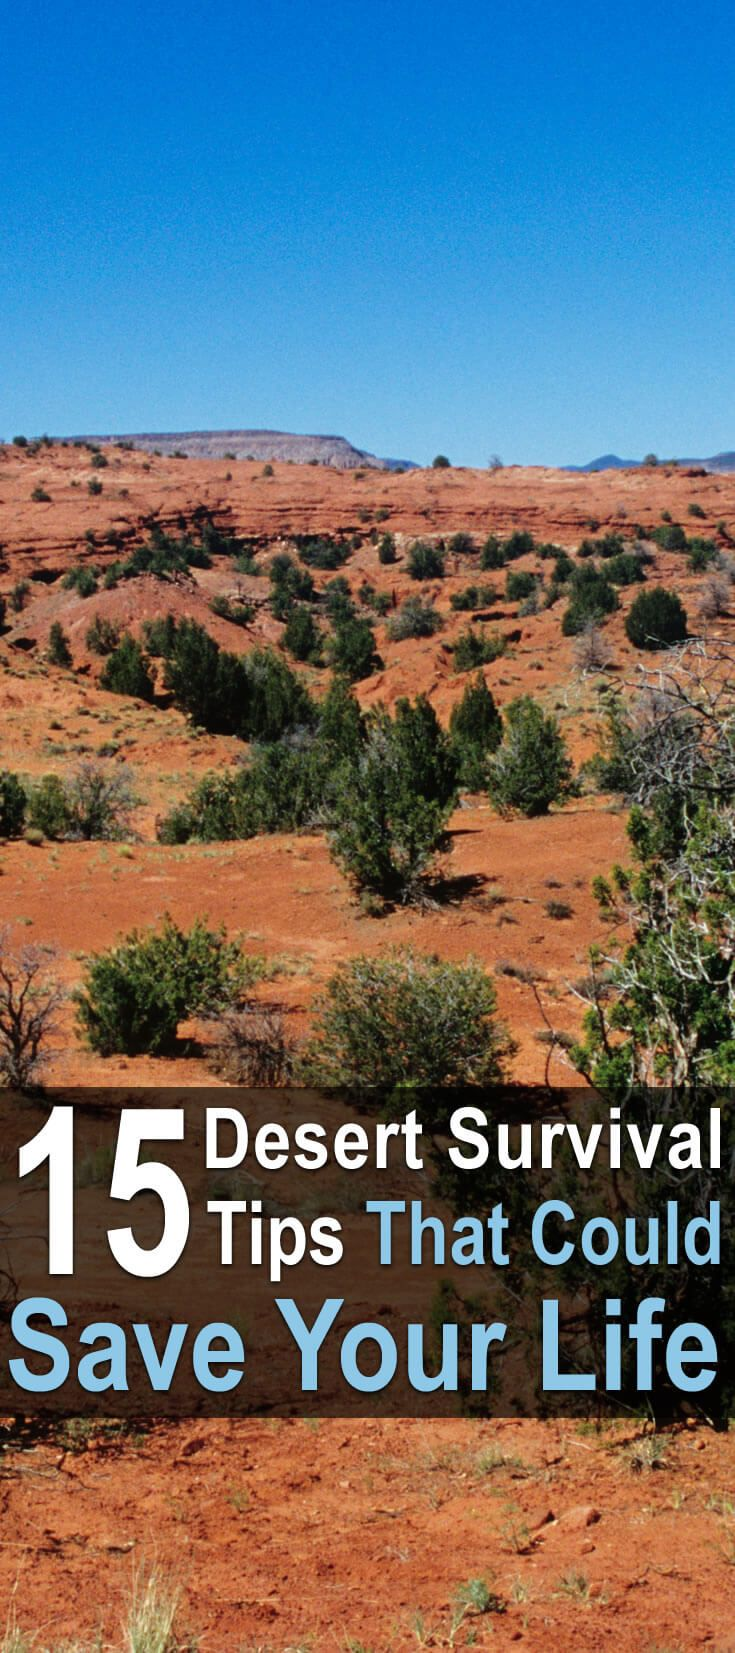 15 Desert Survival Tips That Could Save Your Life